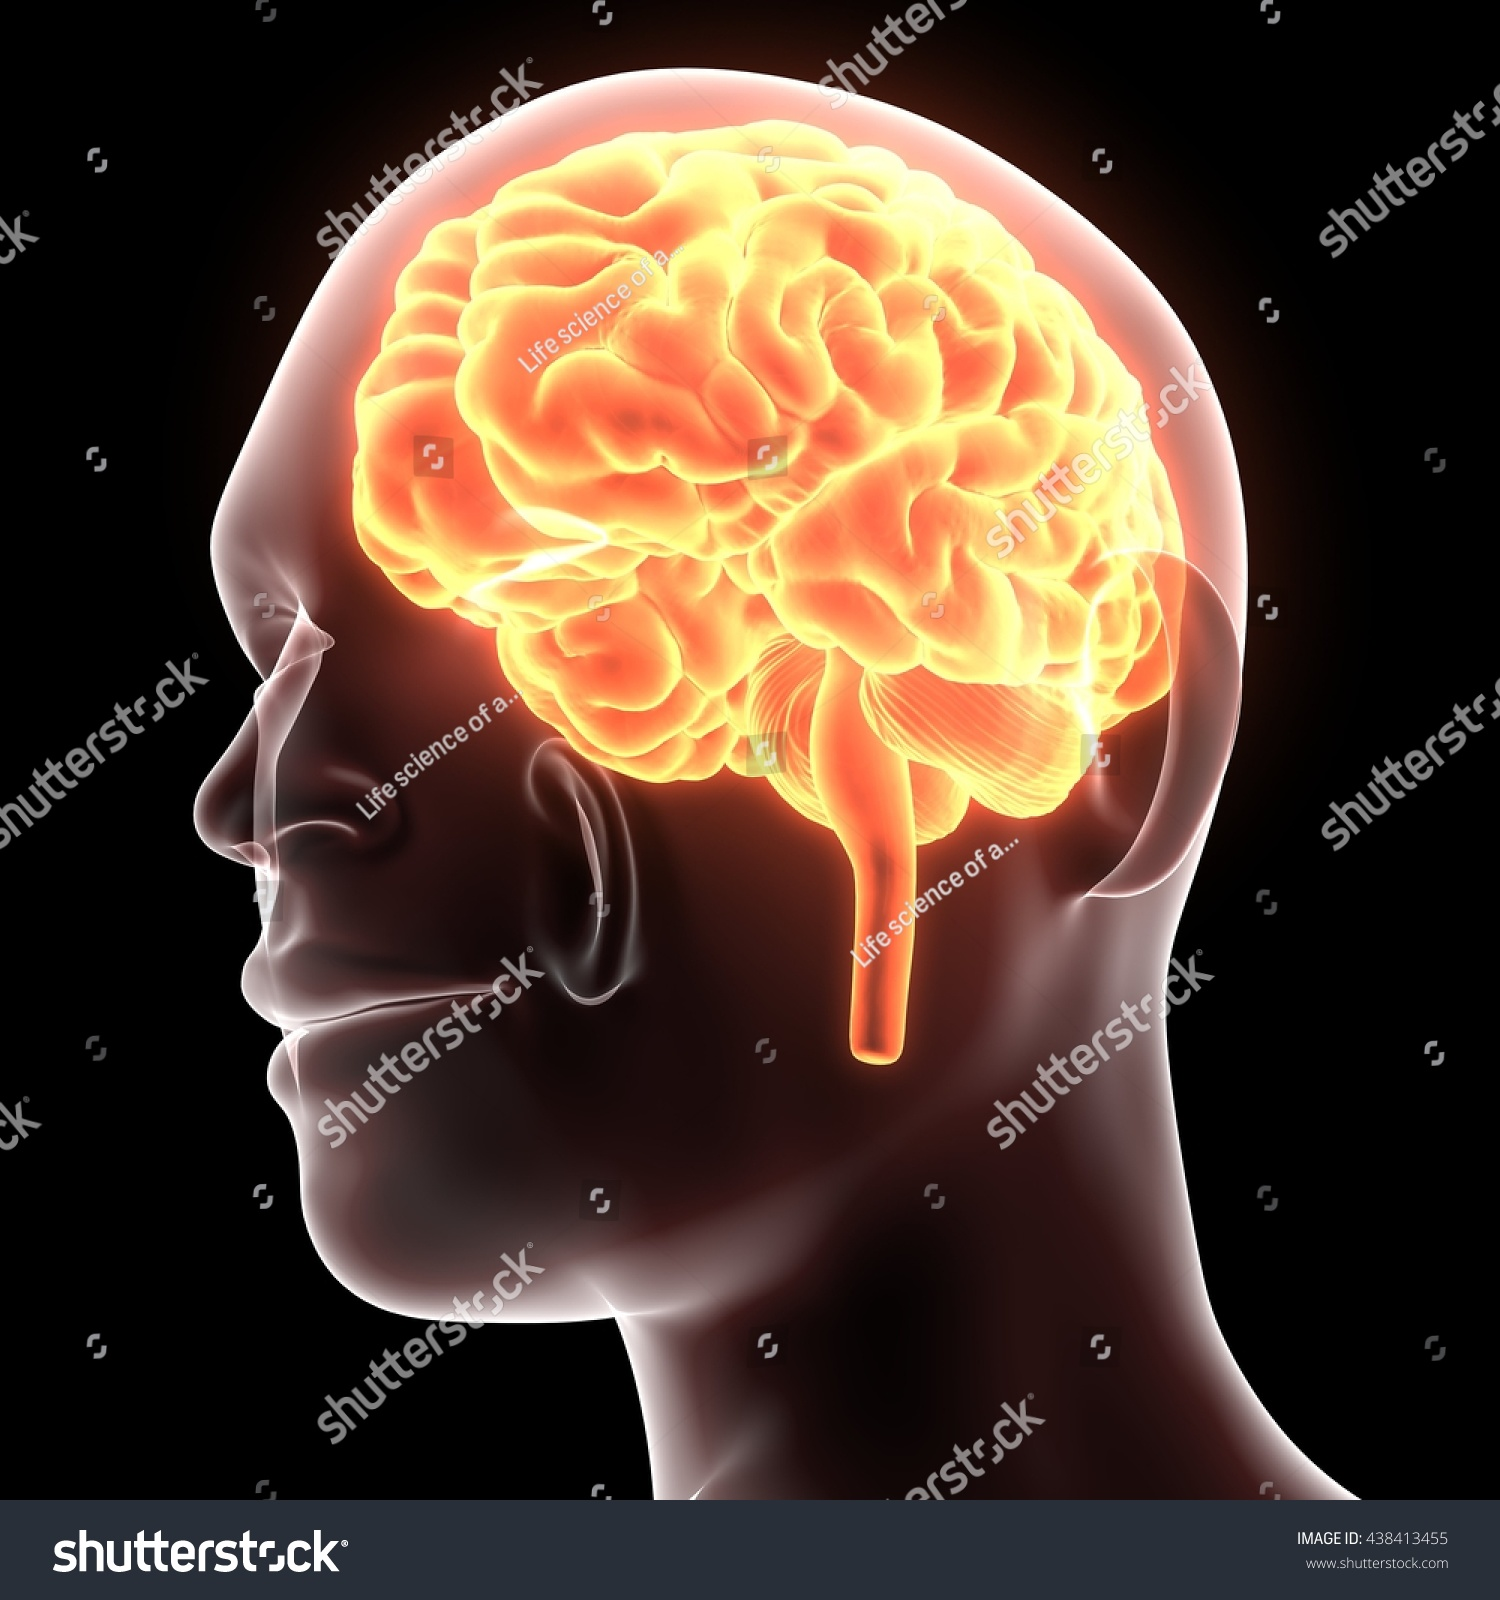 3 D Illustration Human Brain Anatomy Stock Illustration - Royalty ...